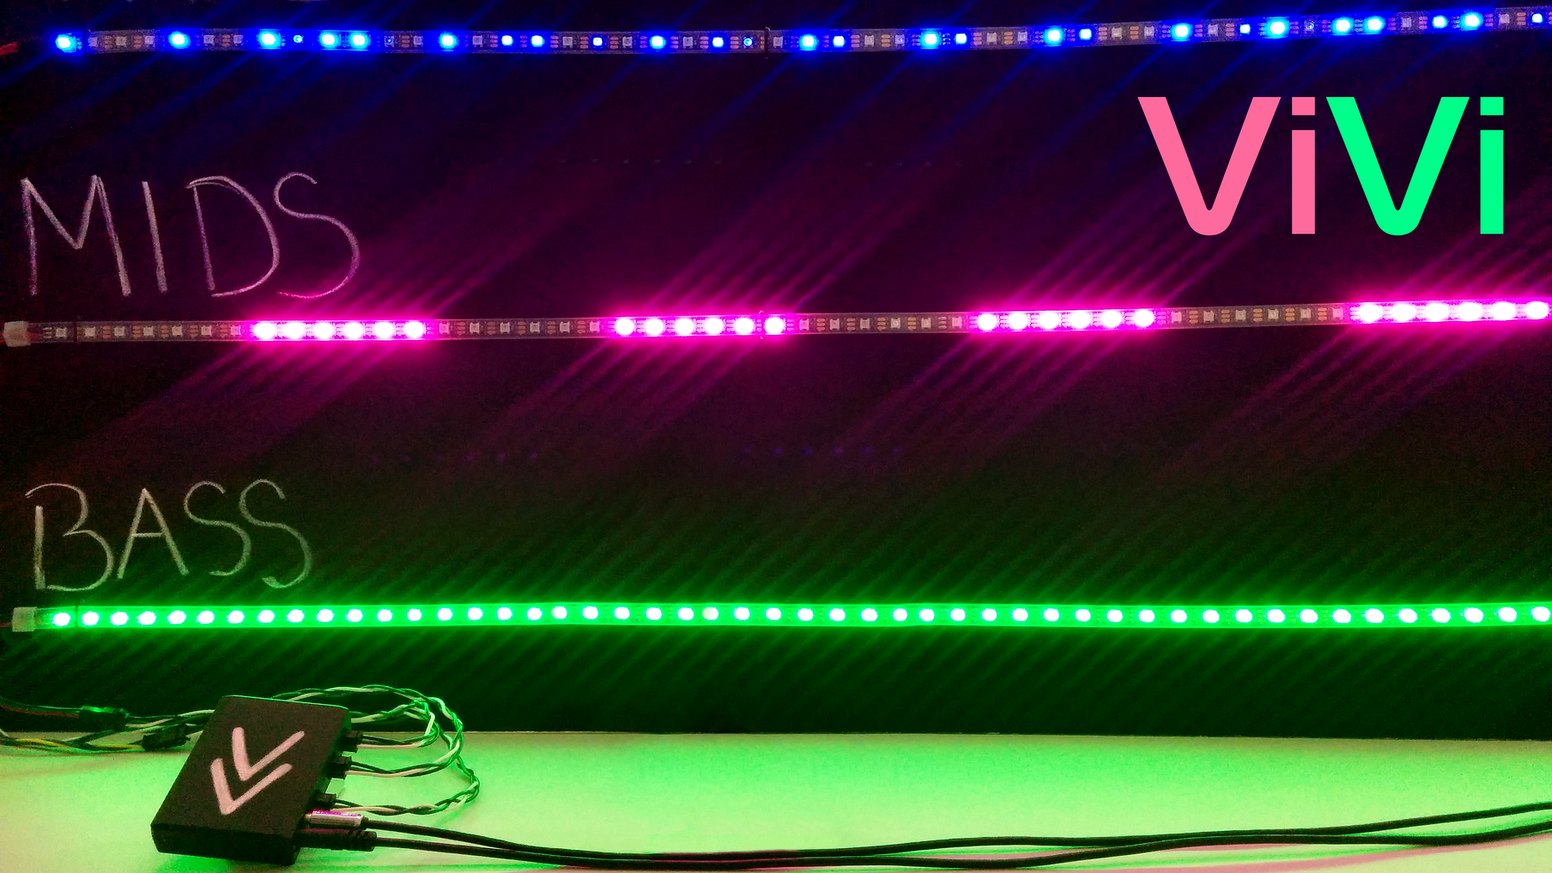 The Smartest Music Reactive Led Controller Vivi By Matt Kachur Tri Color Circuit Creates Synchronized Light Shows In Real Time Small Enough To Wear